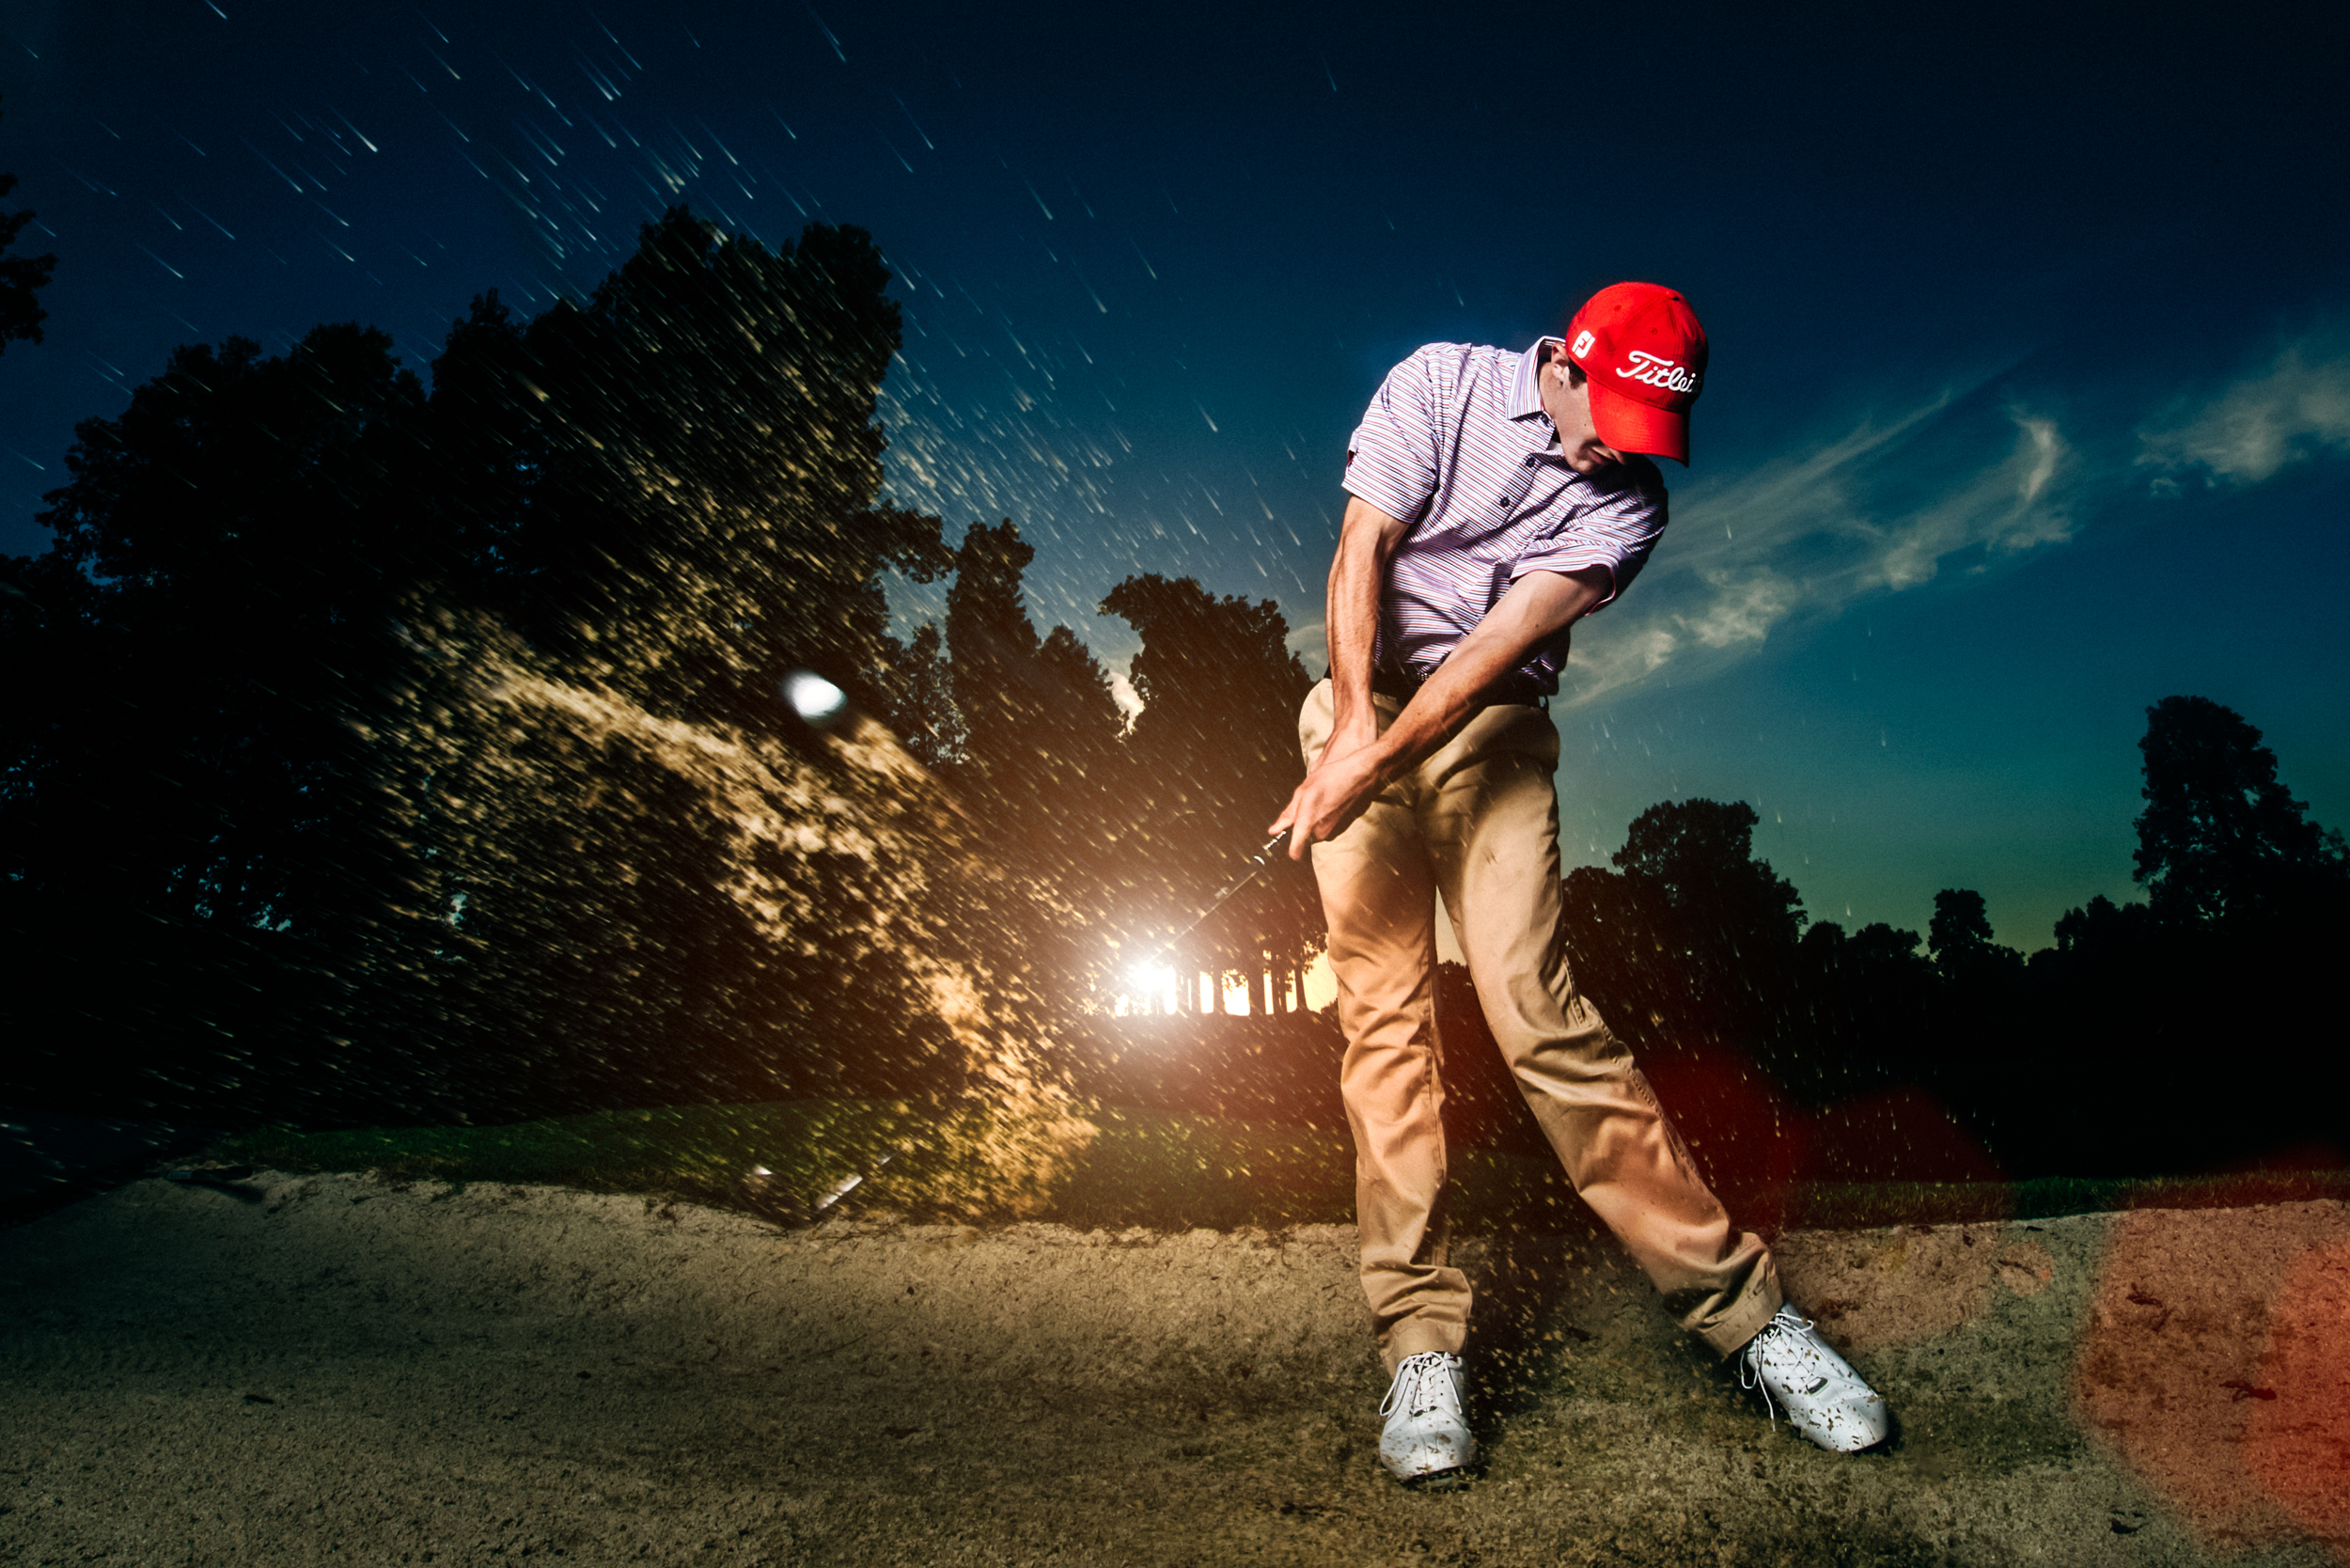 Senior Pictures for Matthew Boyd - McCracken County Mustangs Class of 2016. Casual and golf